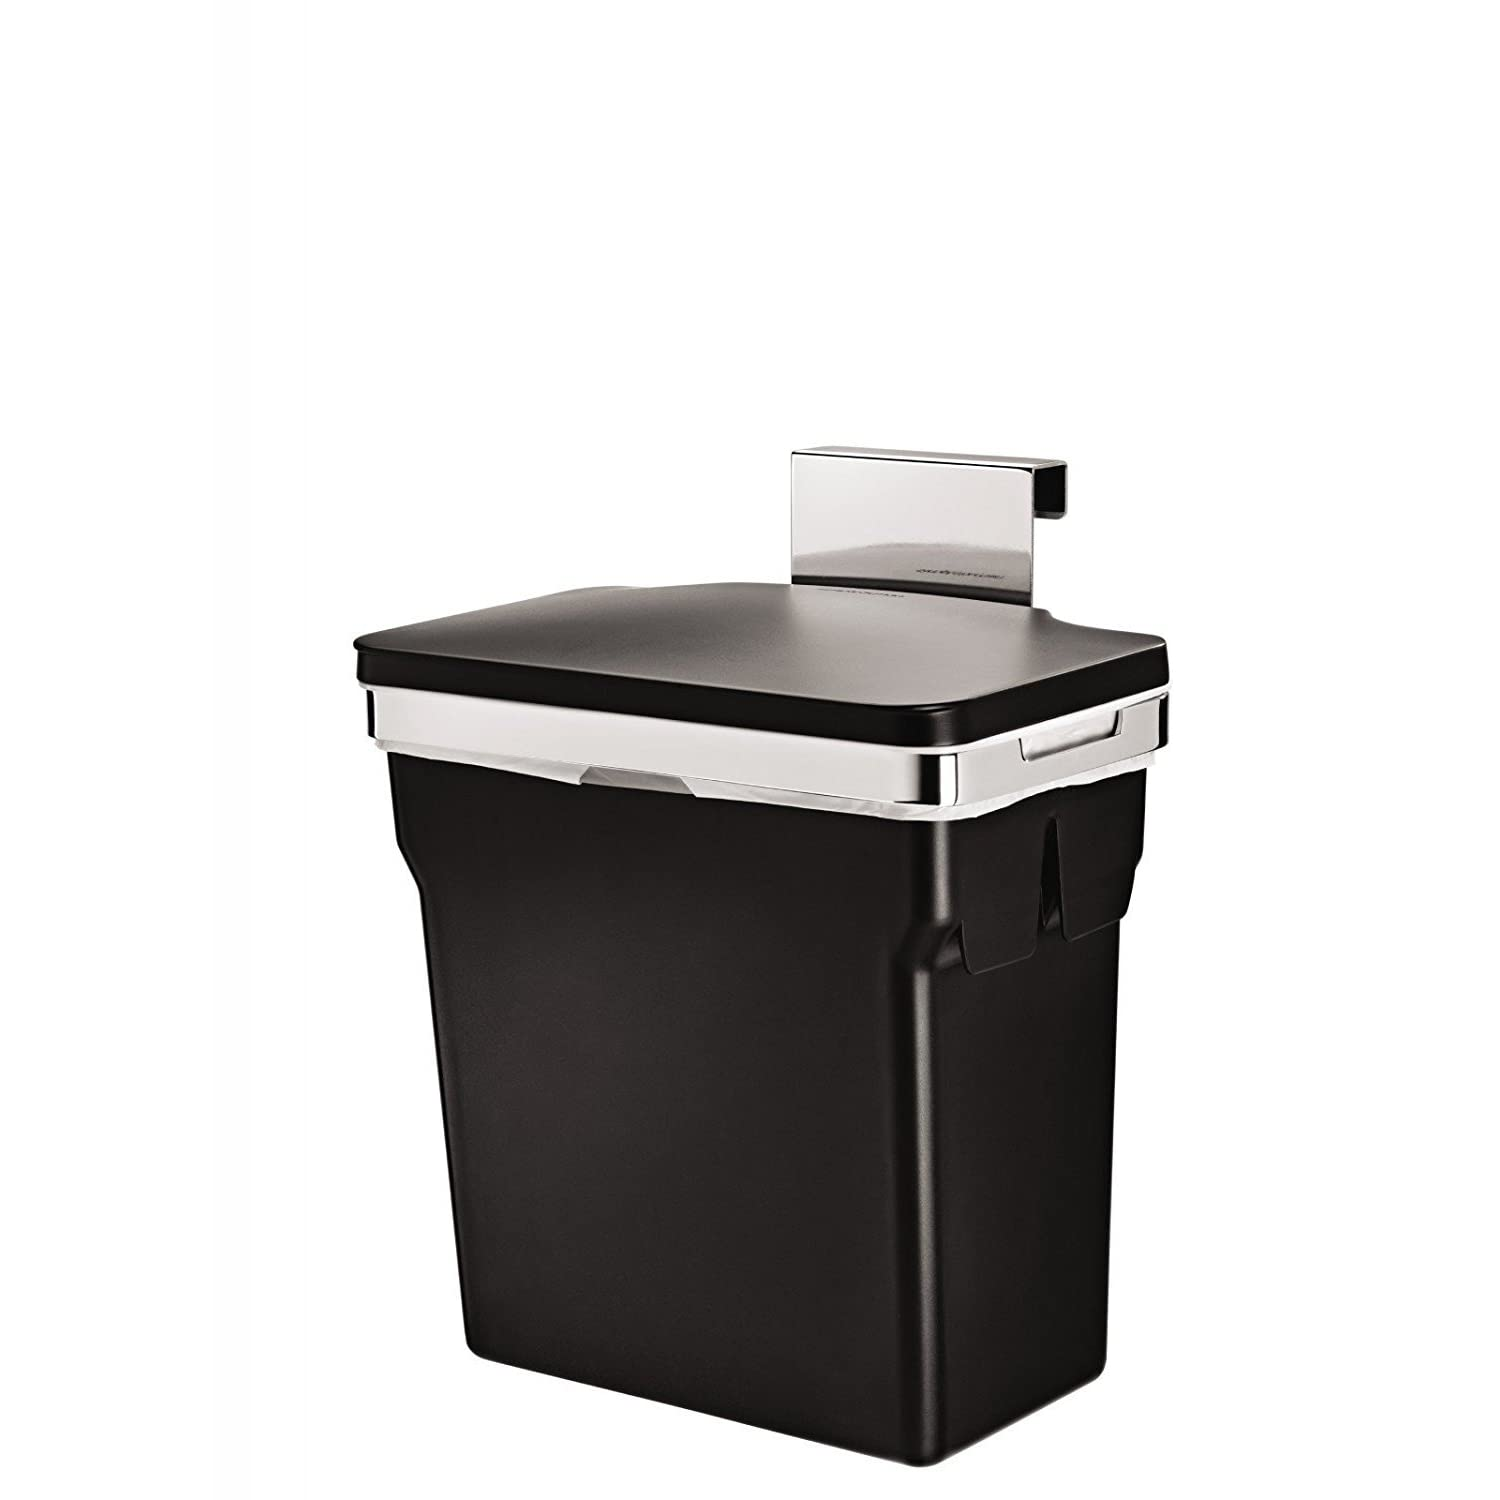 Simplehuman In-Cabinet Trash Can Review